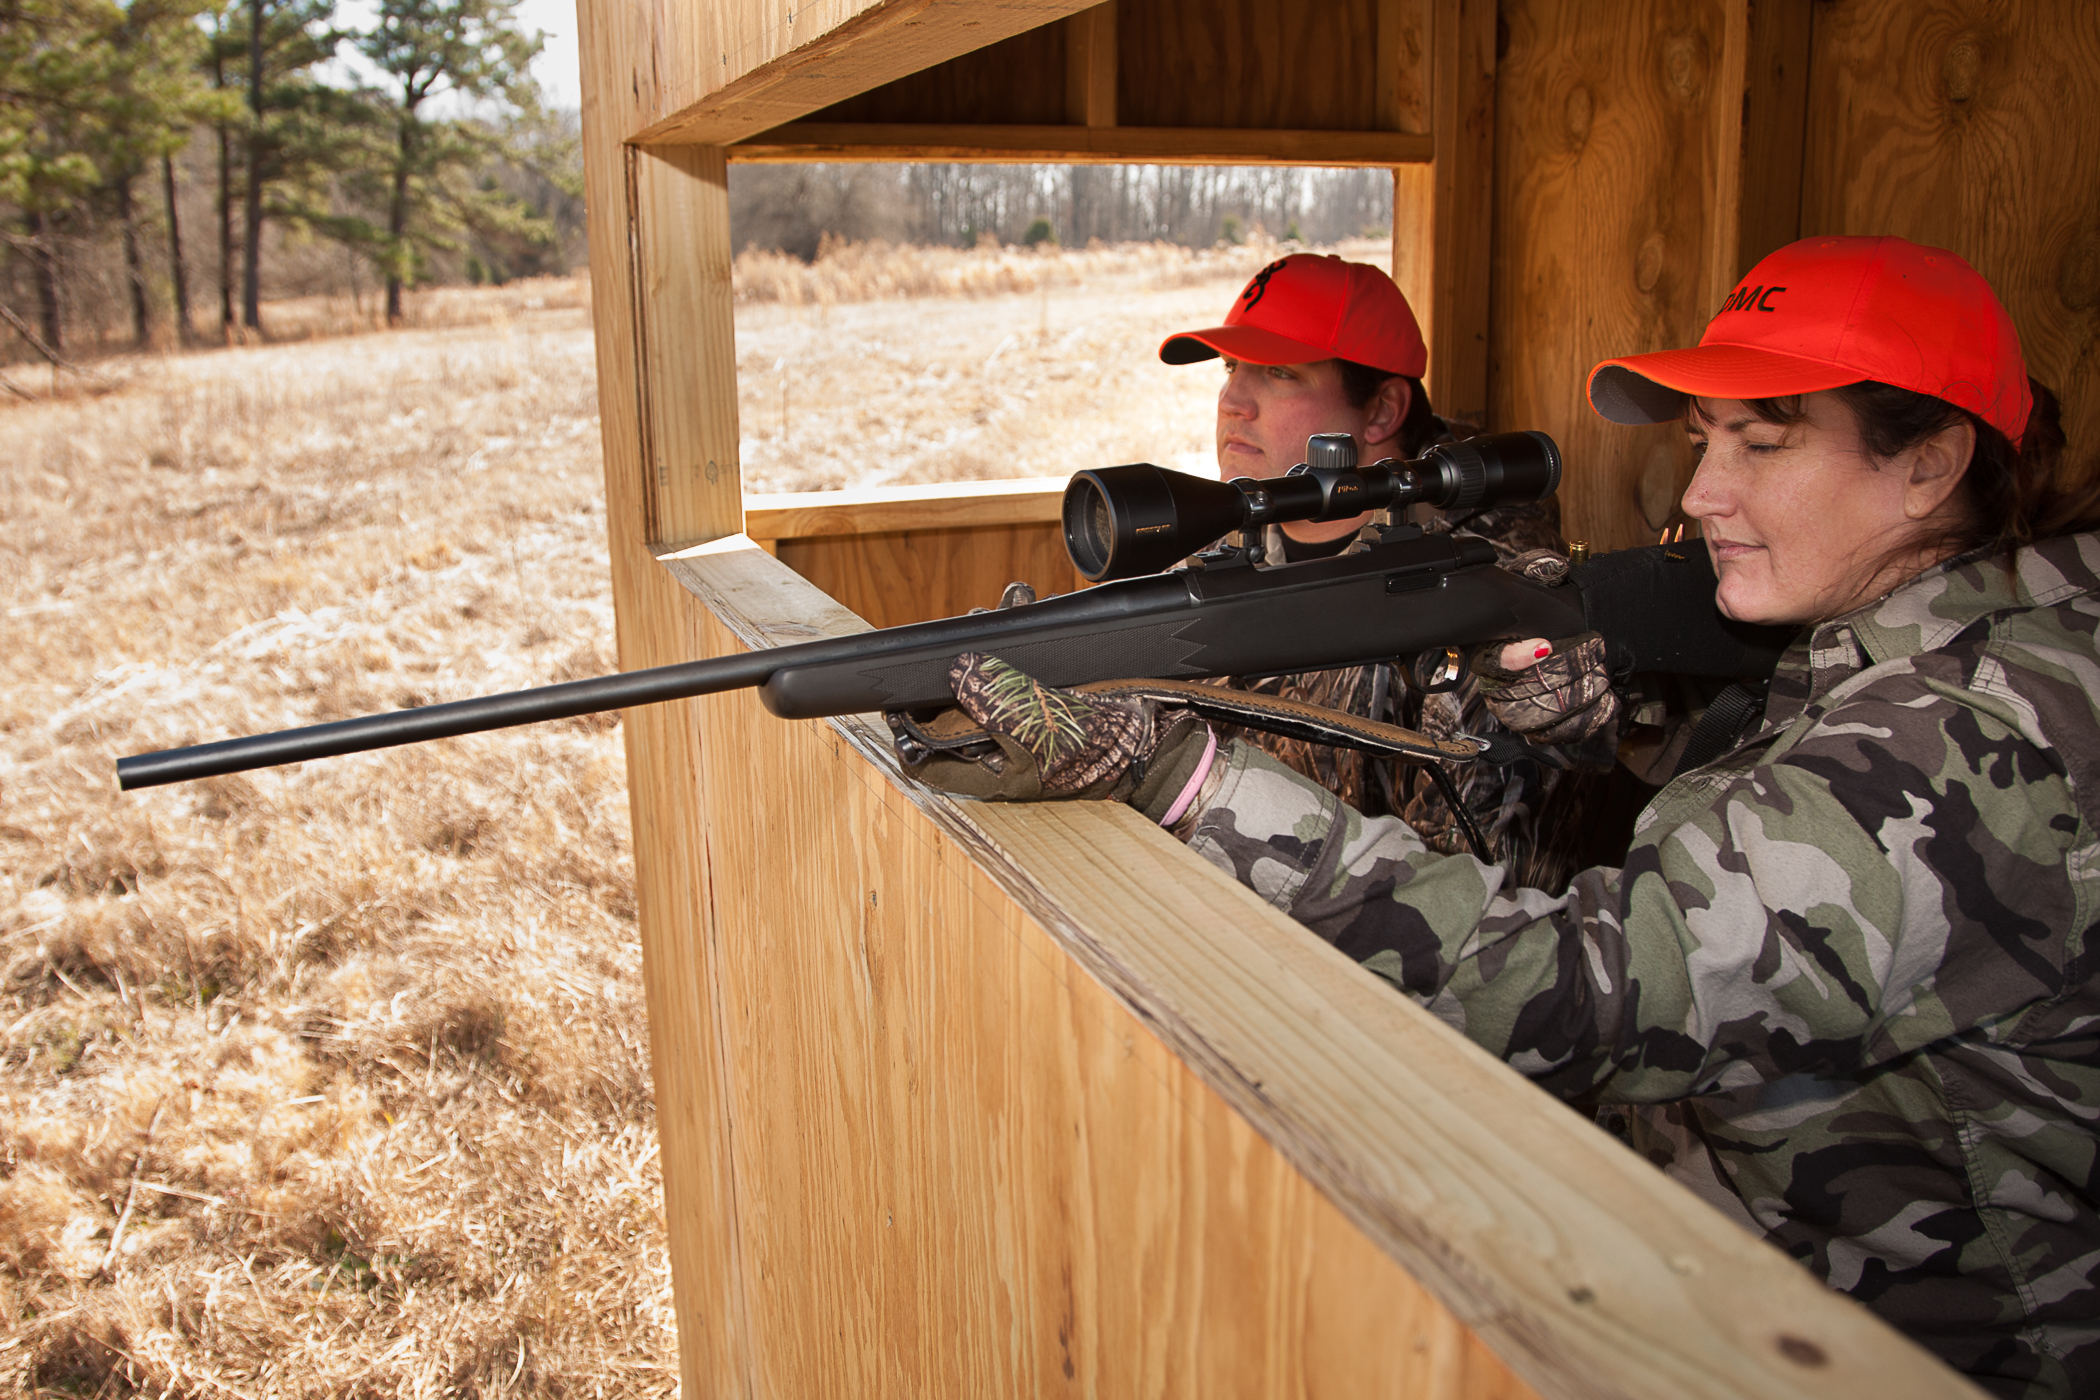 Alabama's Adult Mentored Hunting program provides new hunters with a one-on-one hunt under the guidance of a veteran mentor. Photo by Billy Pope, ADCNR